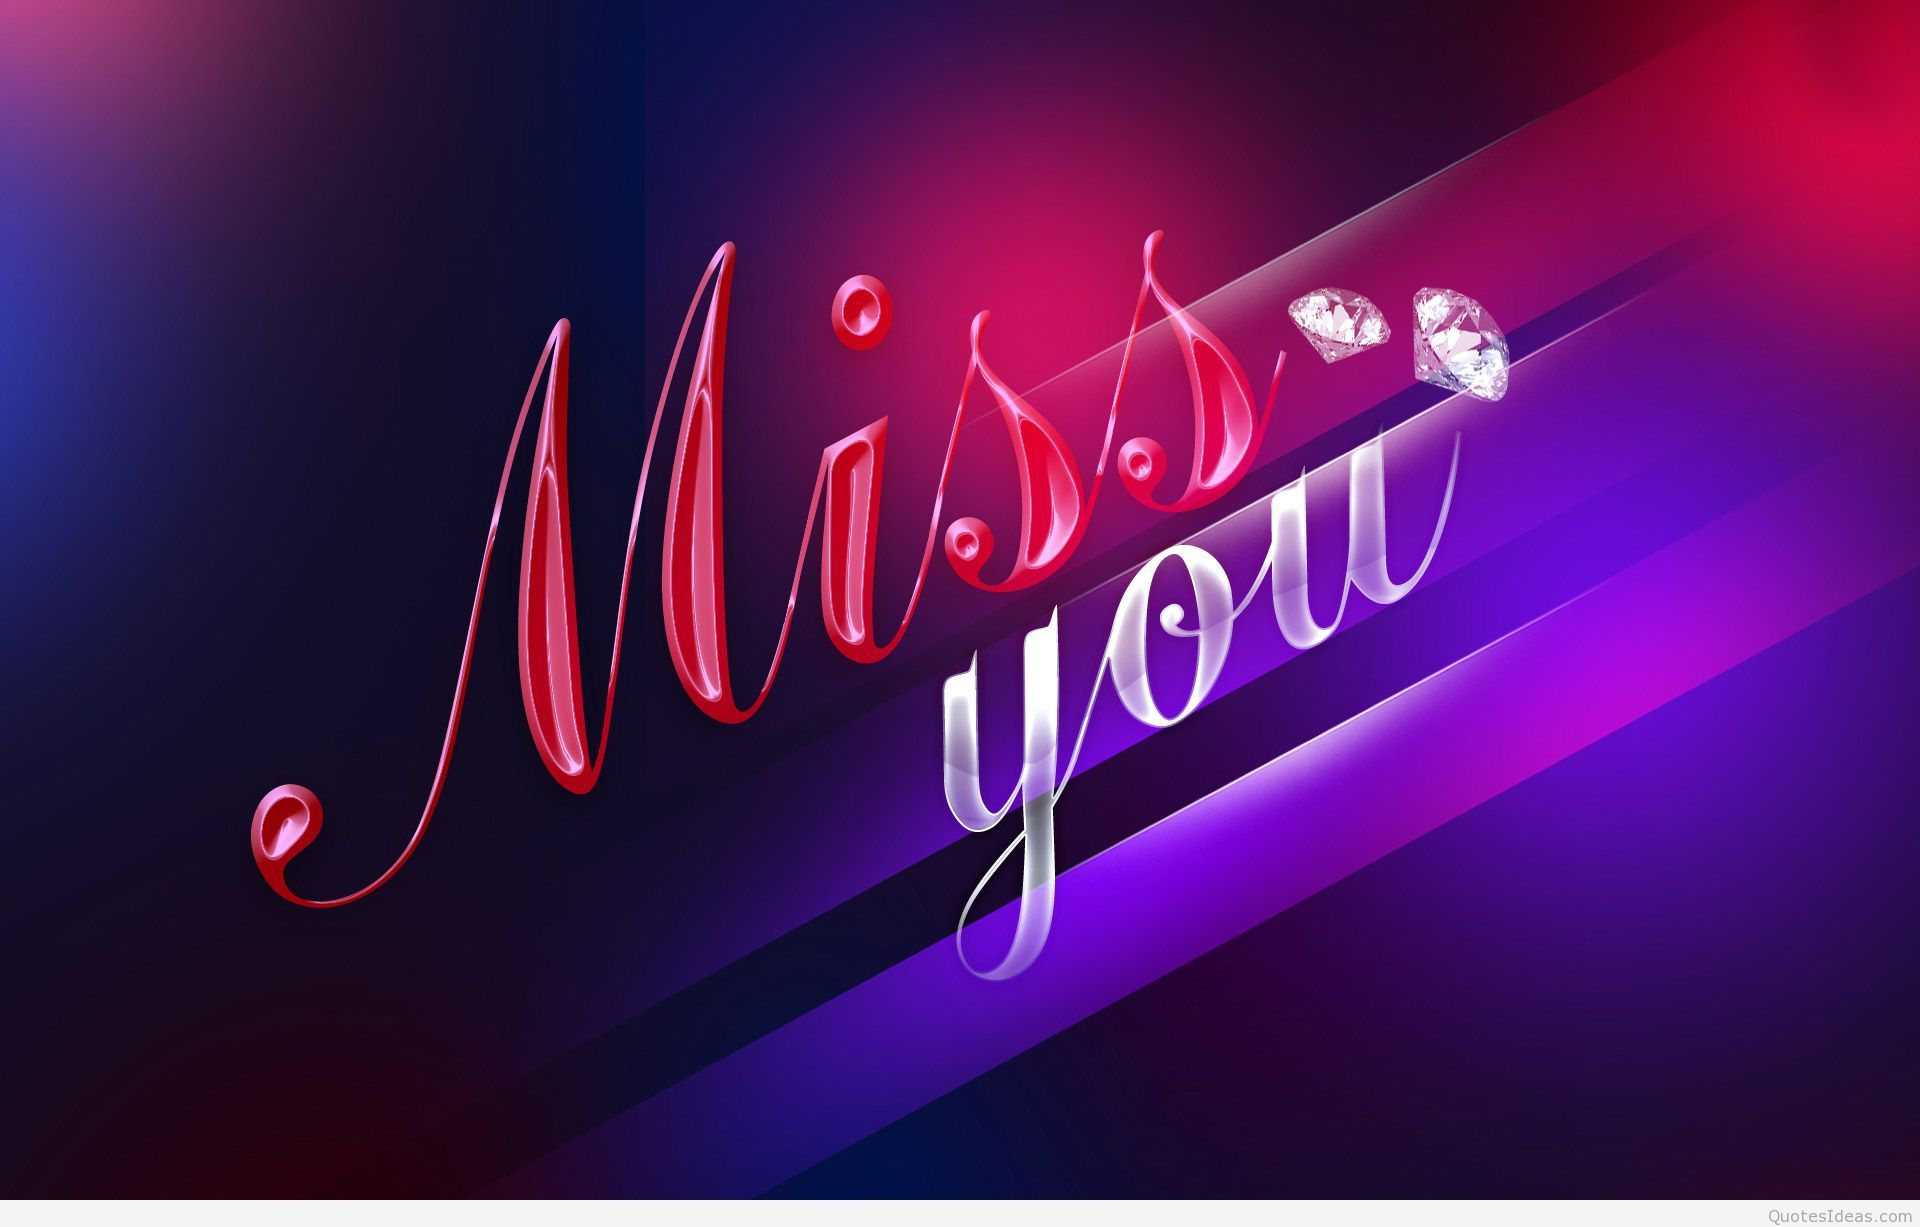 I Love You 3d Wallpapers Hd Wallpapers I Miss You Wallpaper Miss You Images Miss You